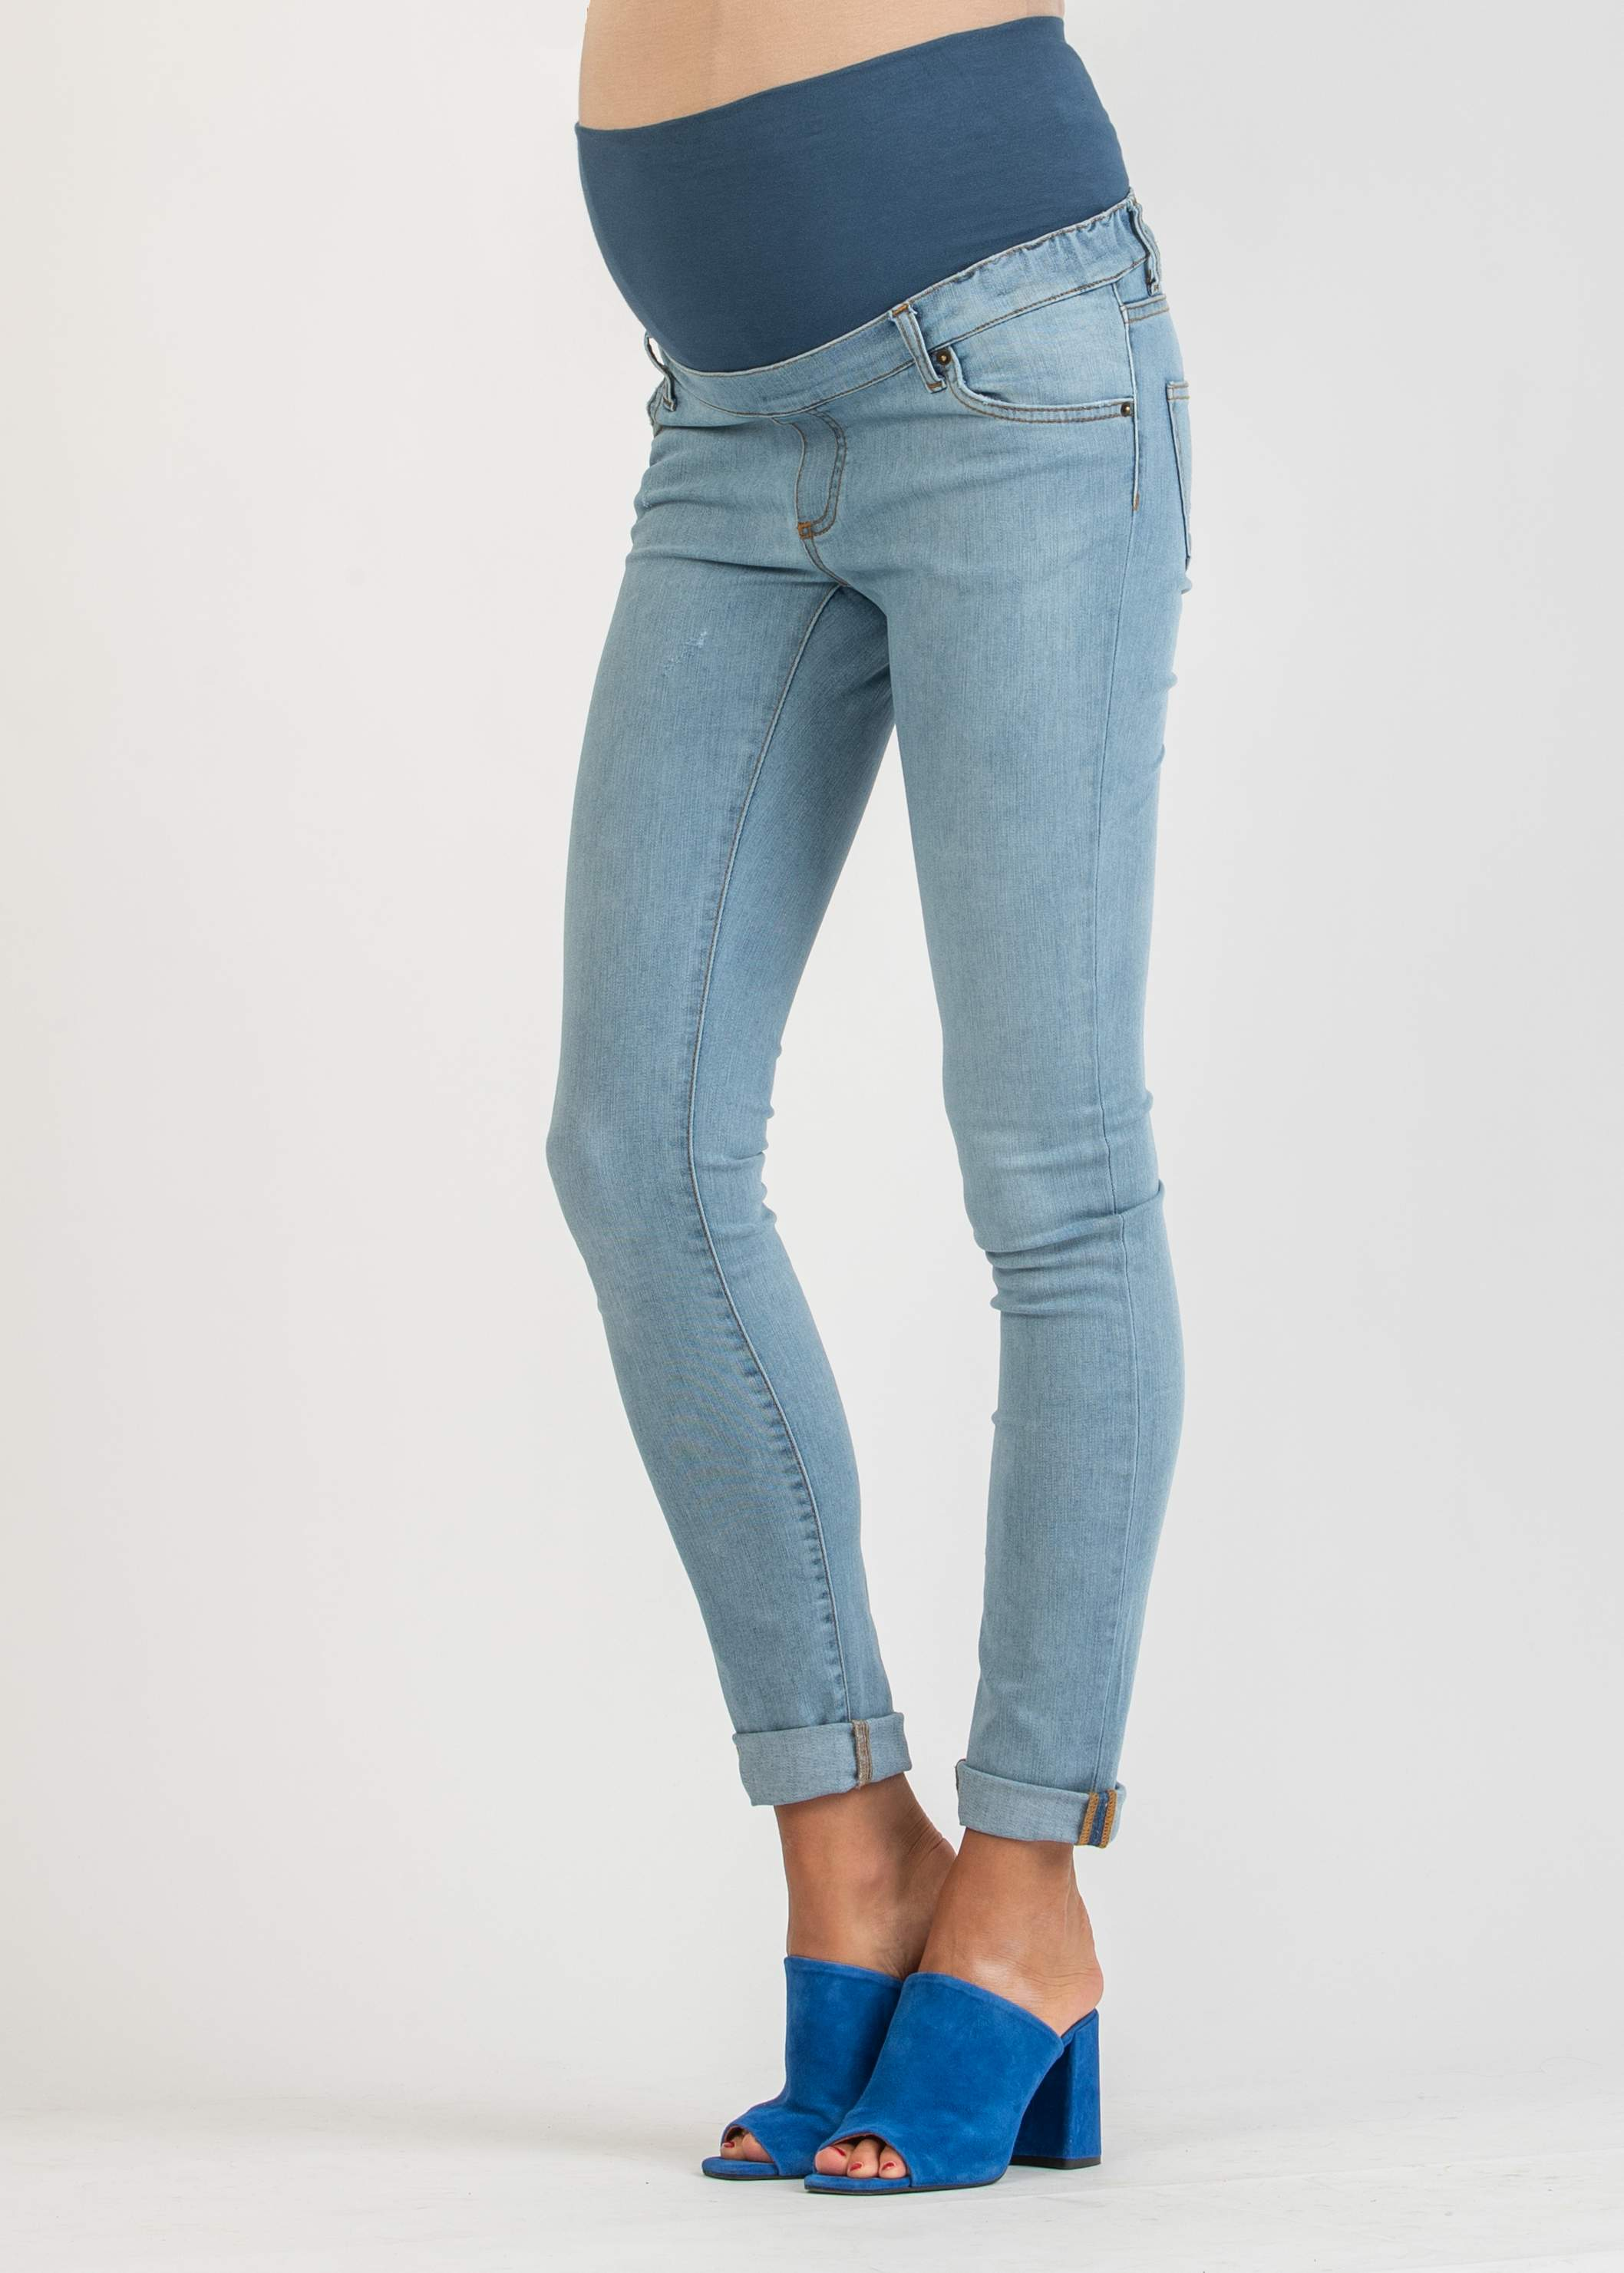 Light Wash Skinny Maternity Jeans